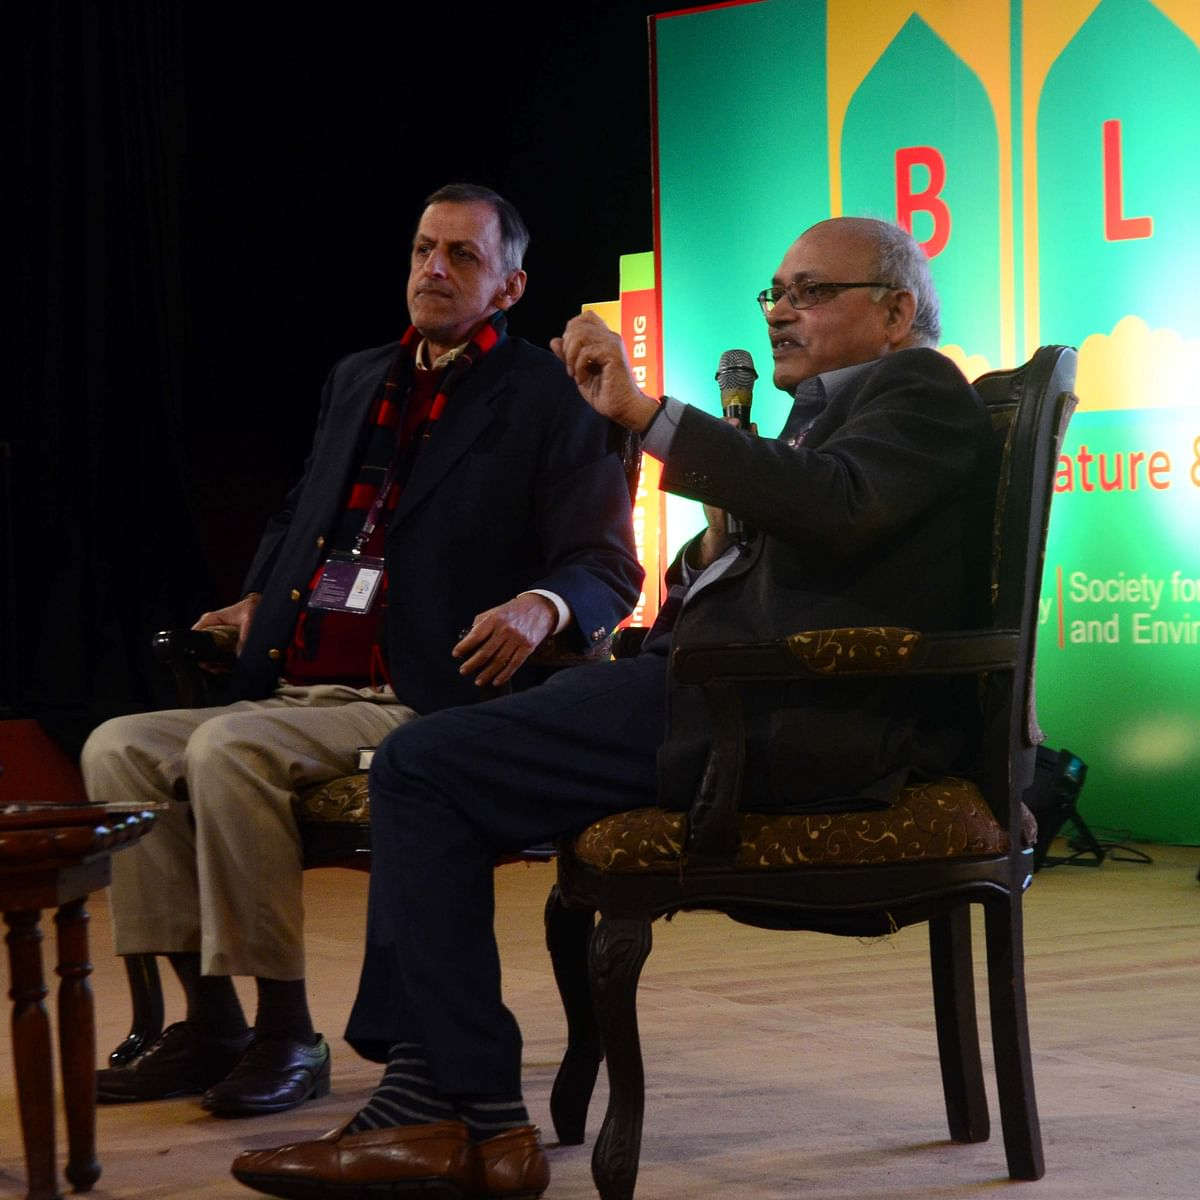 Bhopal Literature and Art Festival: Demonetisation was a political move not economic, says writer Ashok Kumar